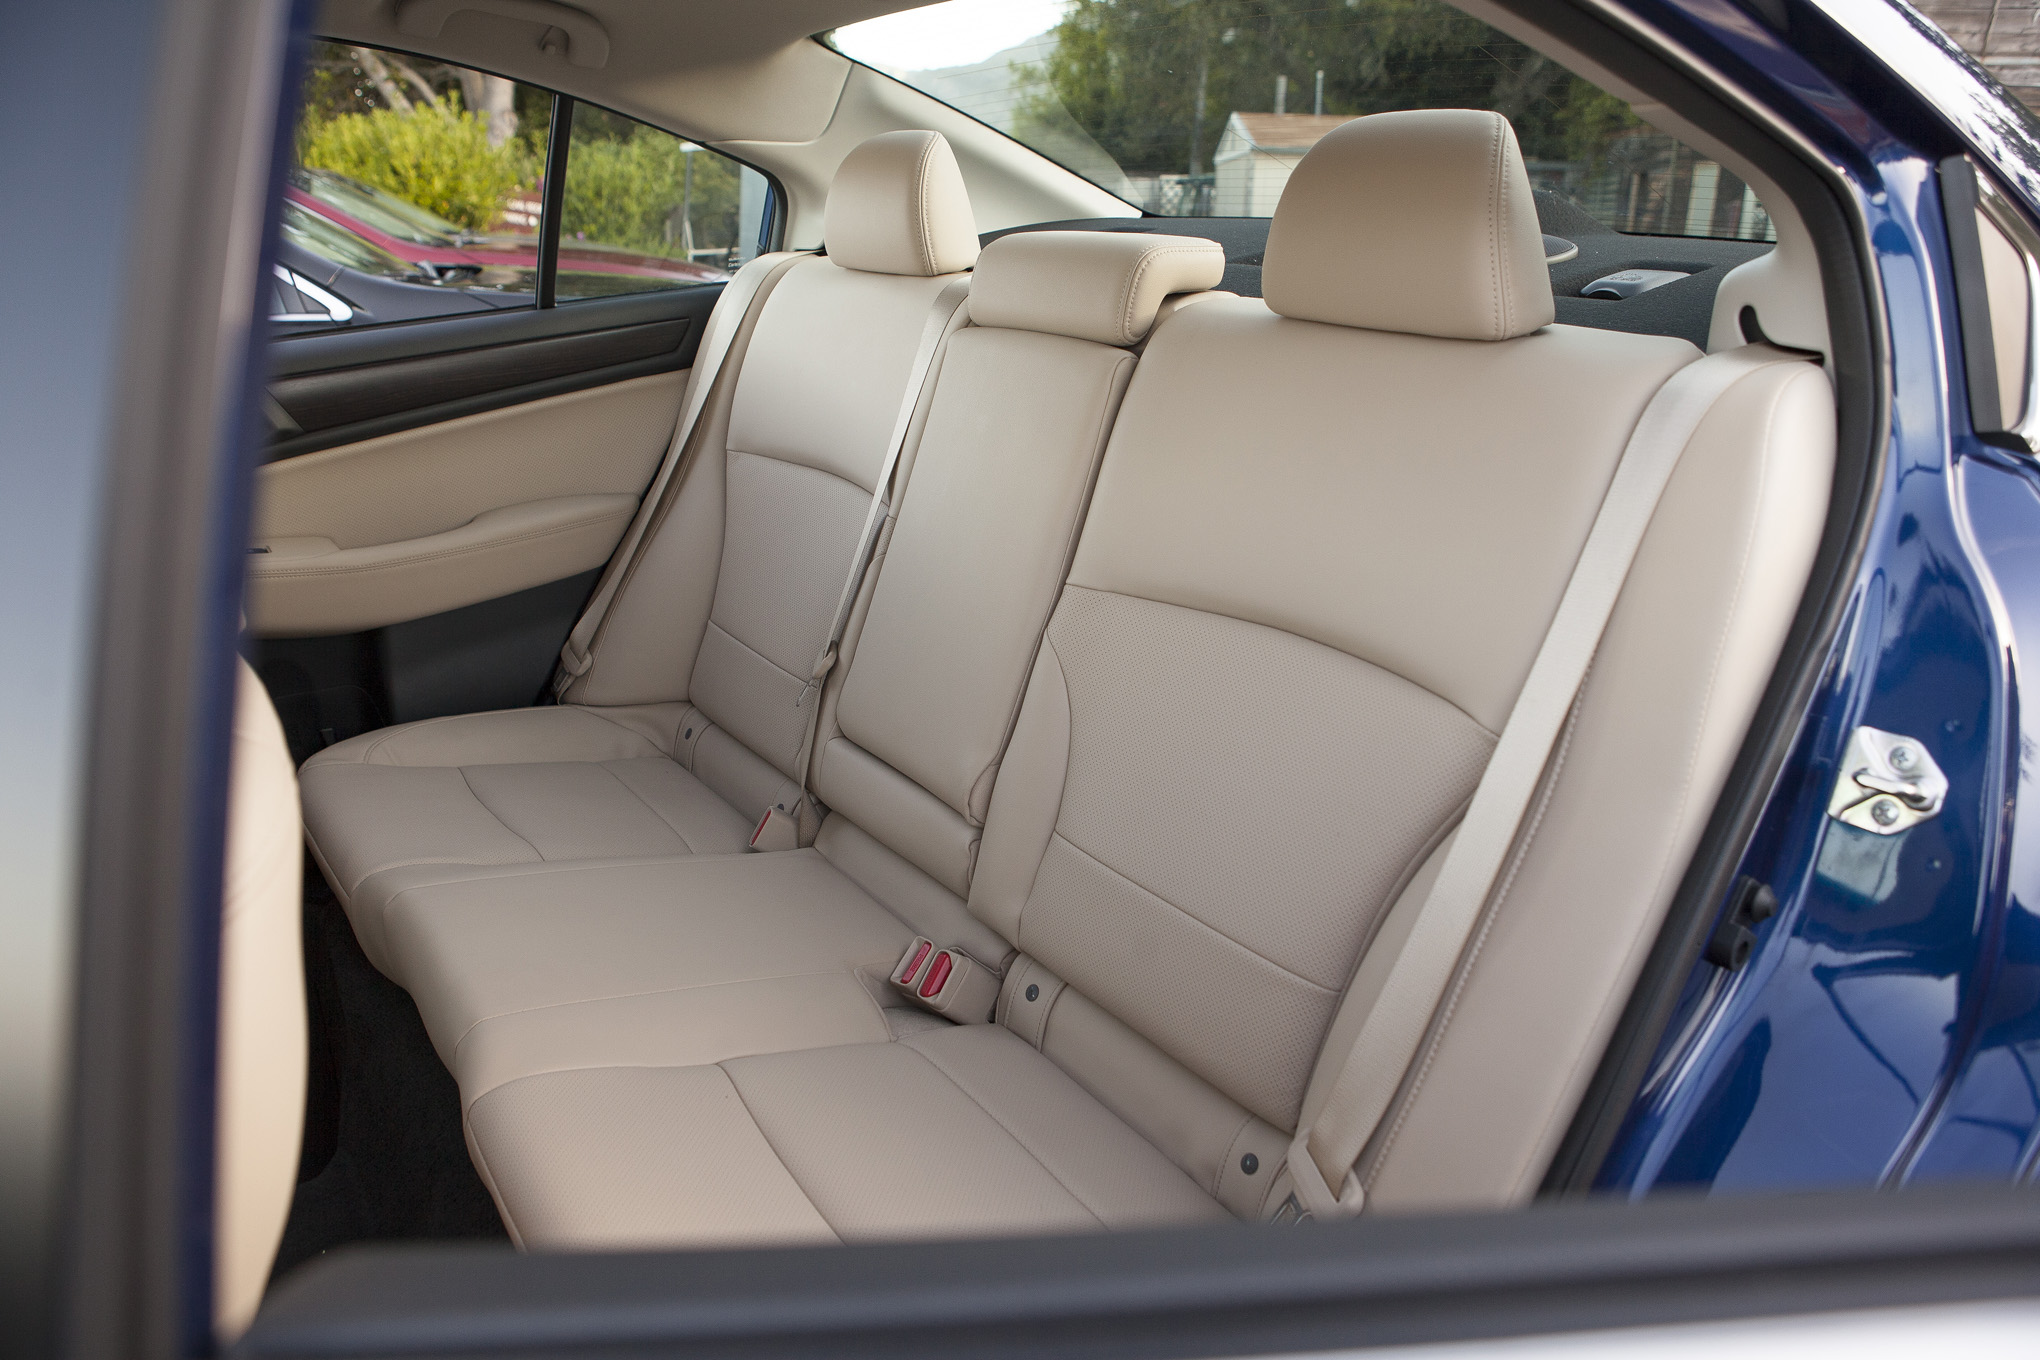 2015 Subaru Legacy Rear Seats Interior